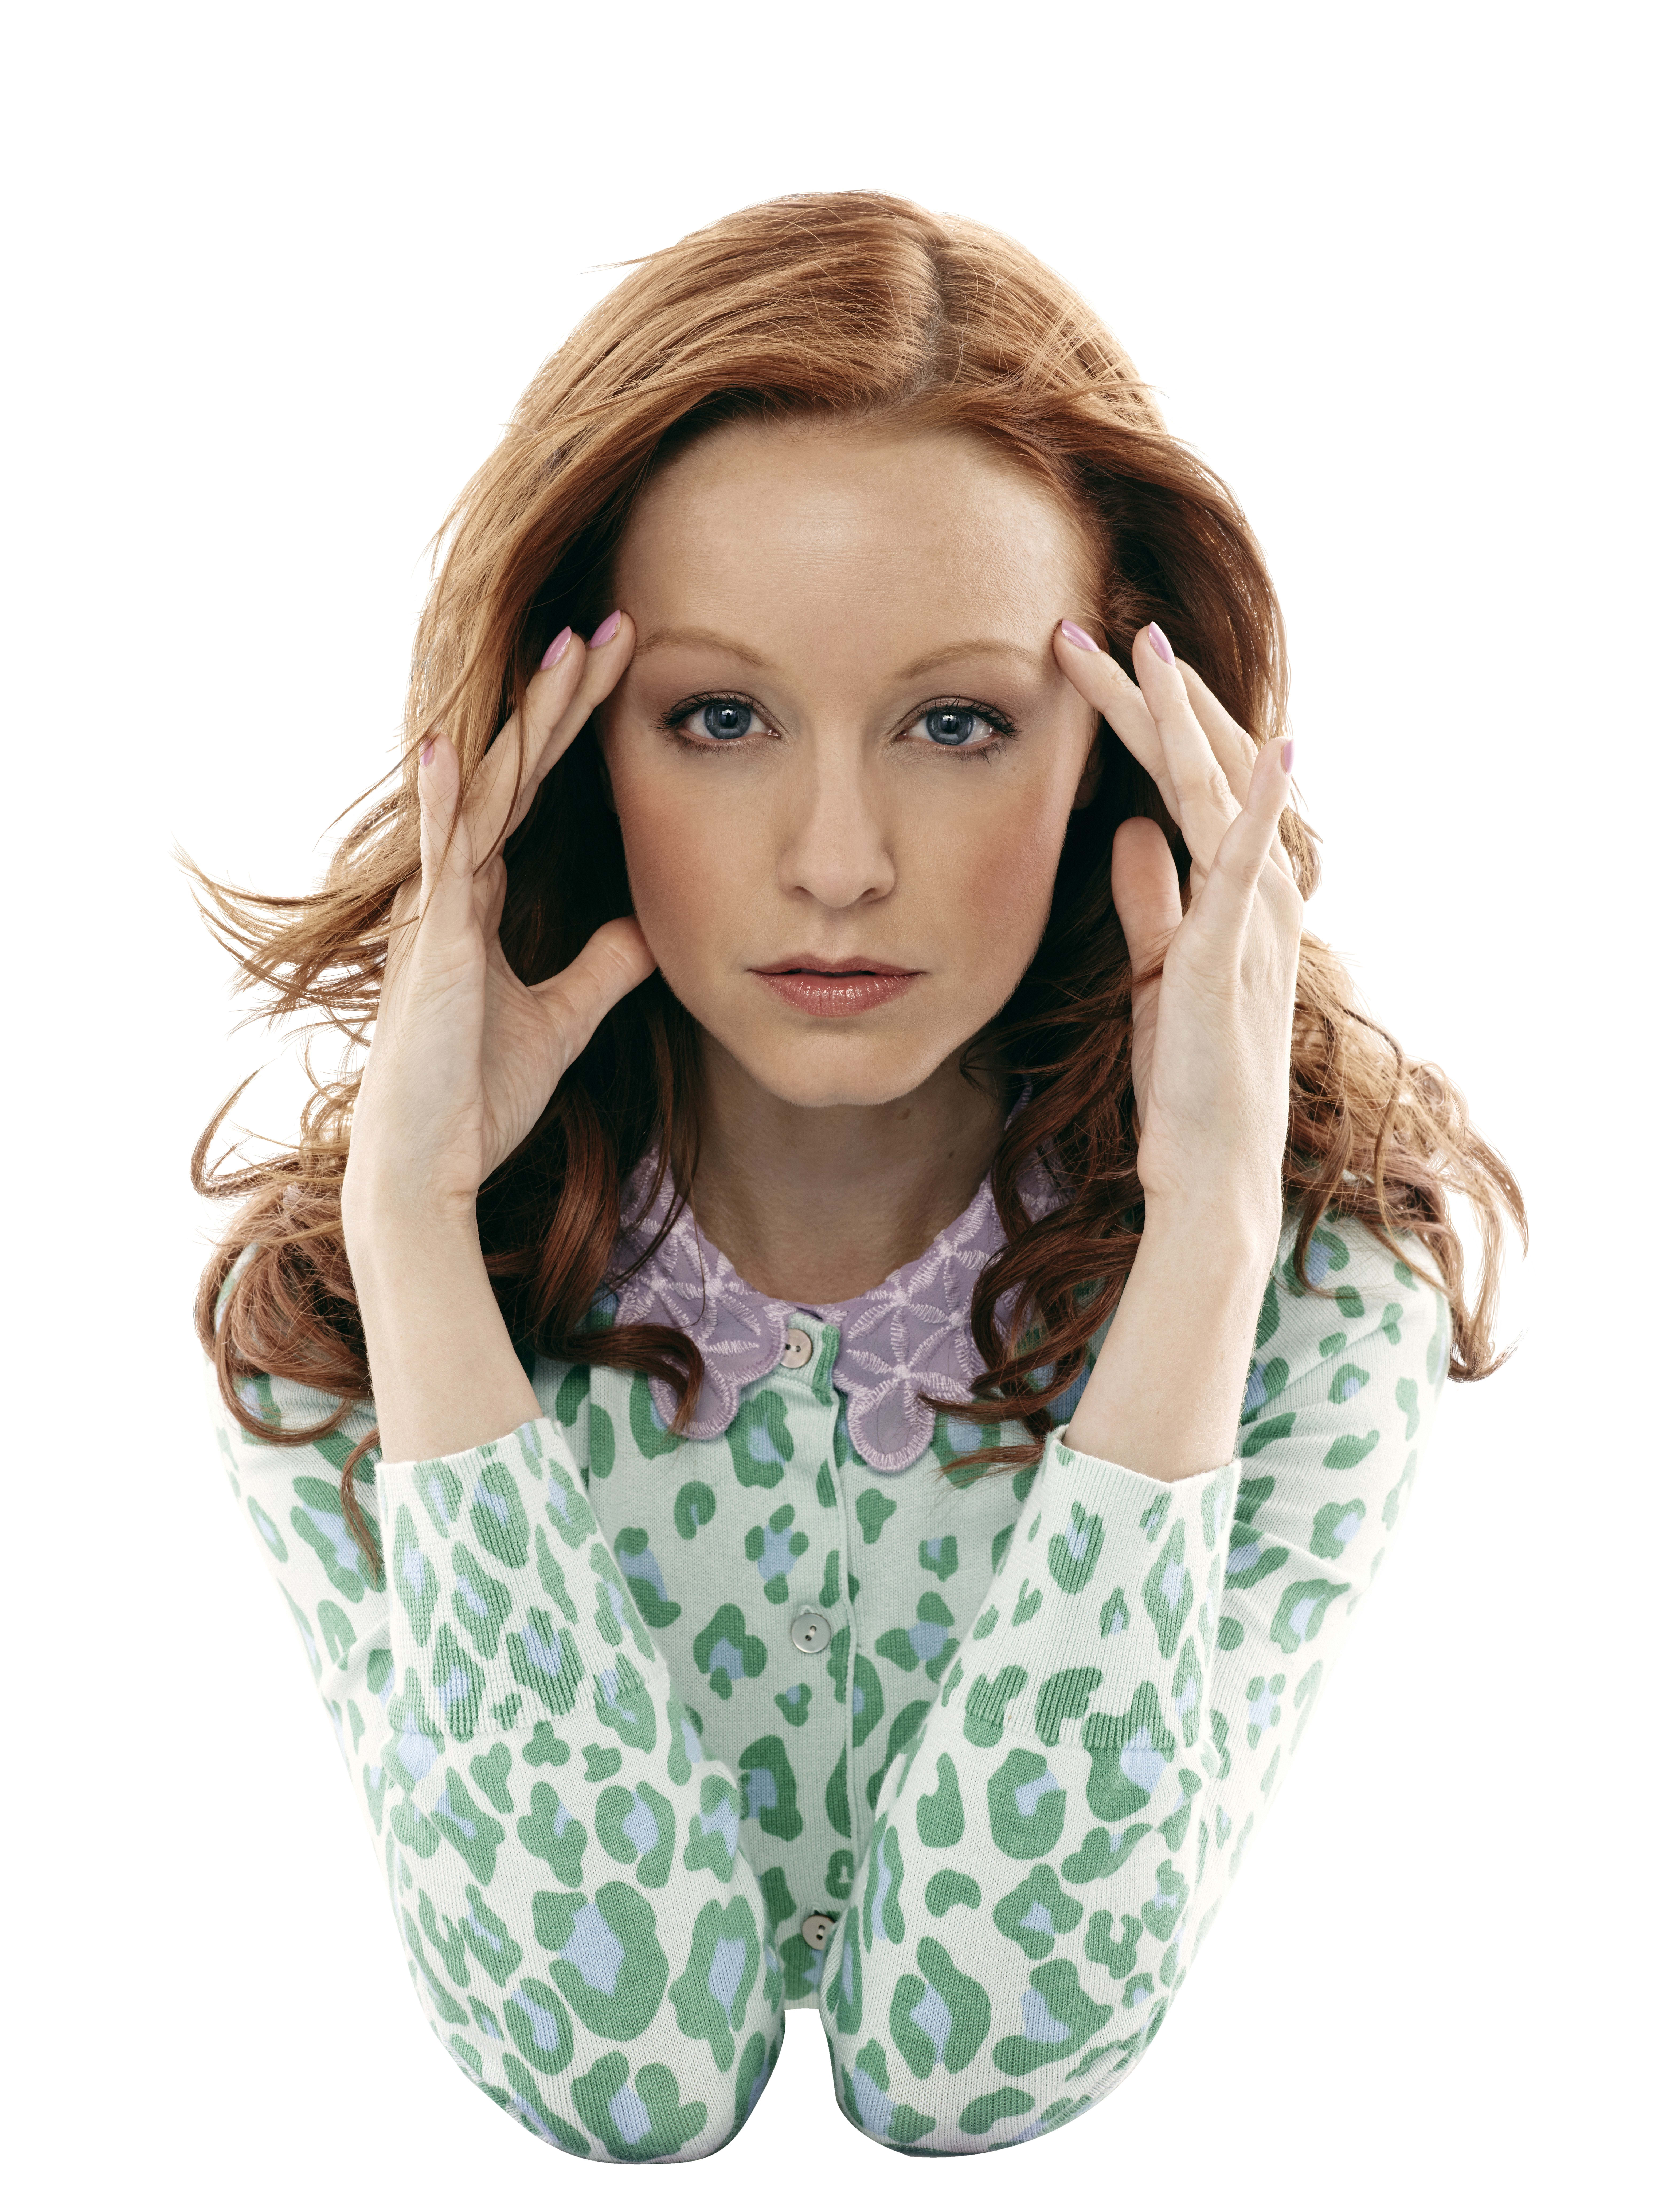 Lindy Booth Pics photo 28